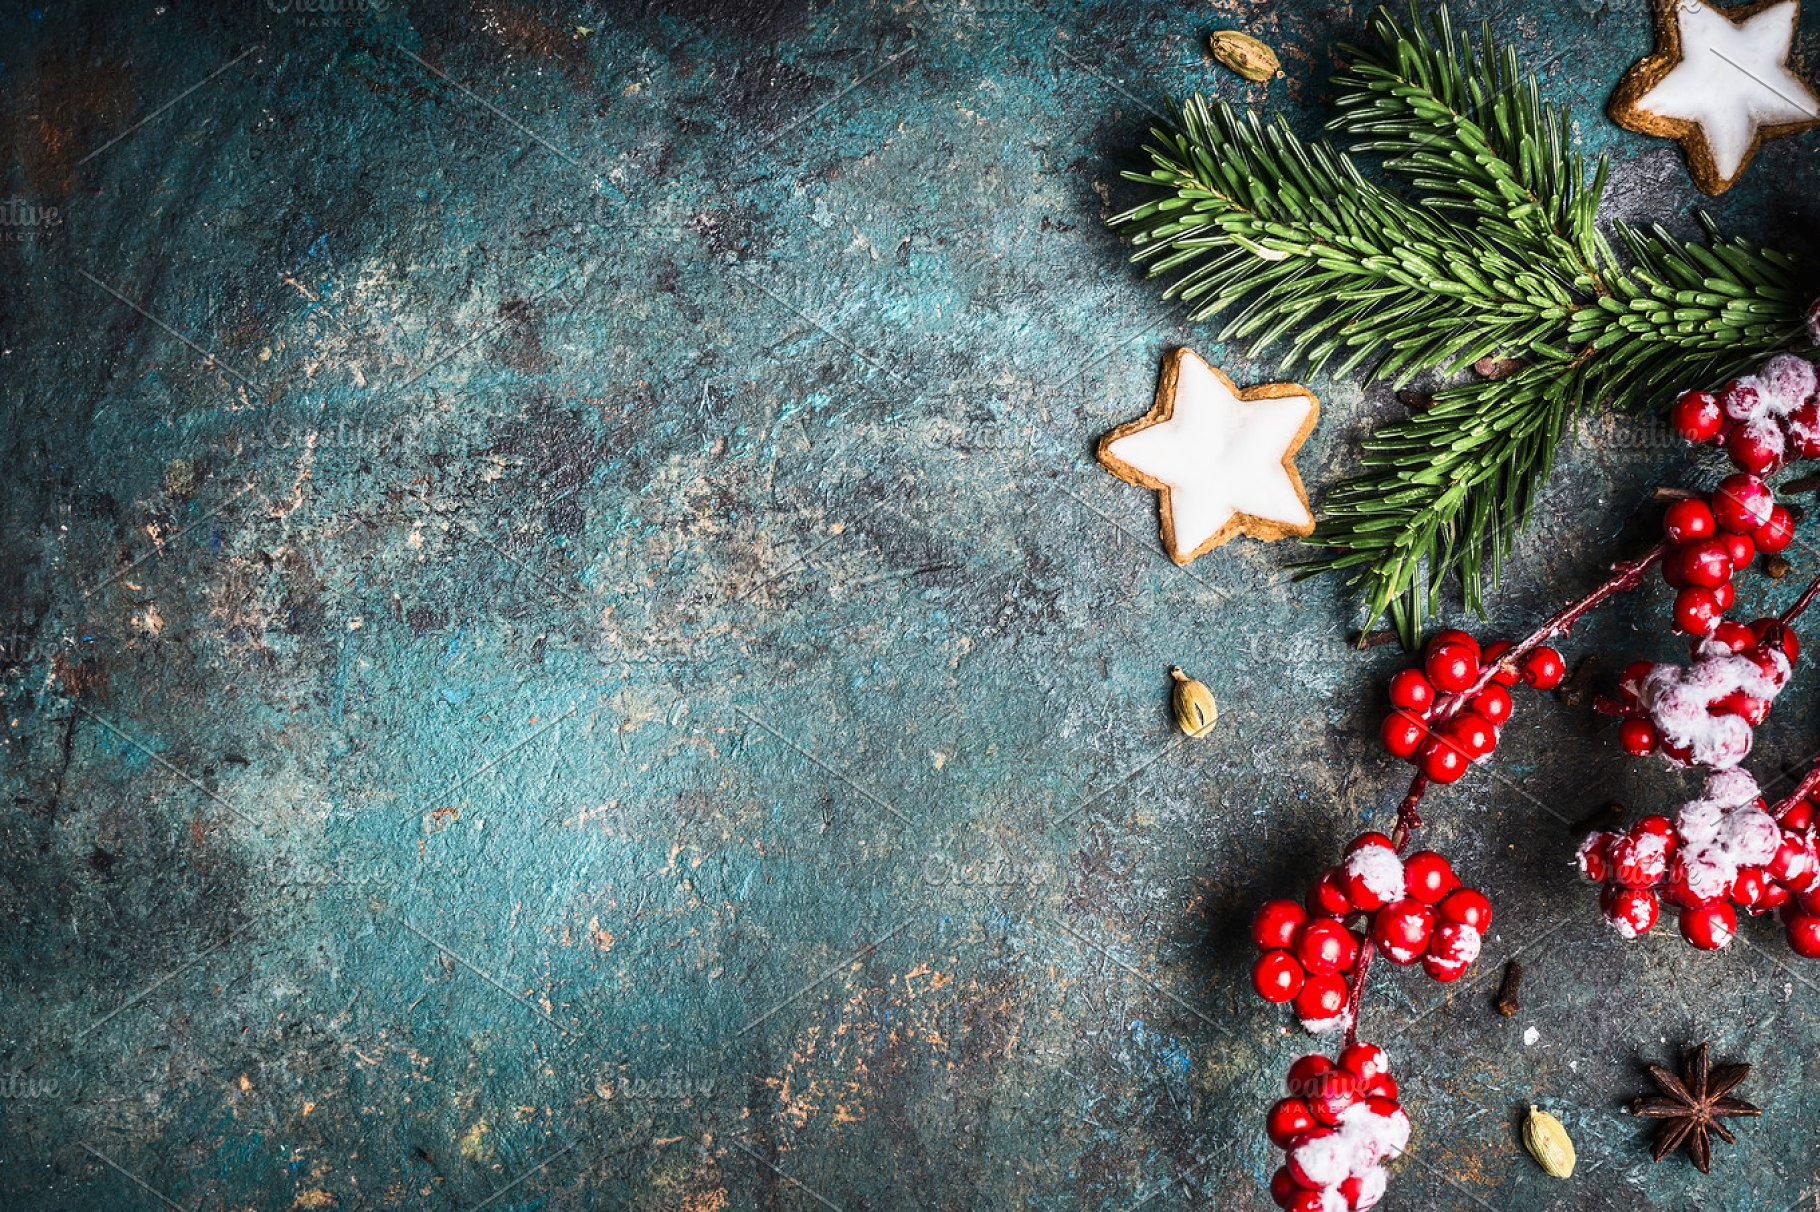 Christmas Background Hd.Rustic Christmas Background